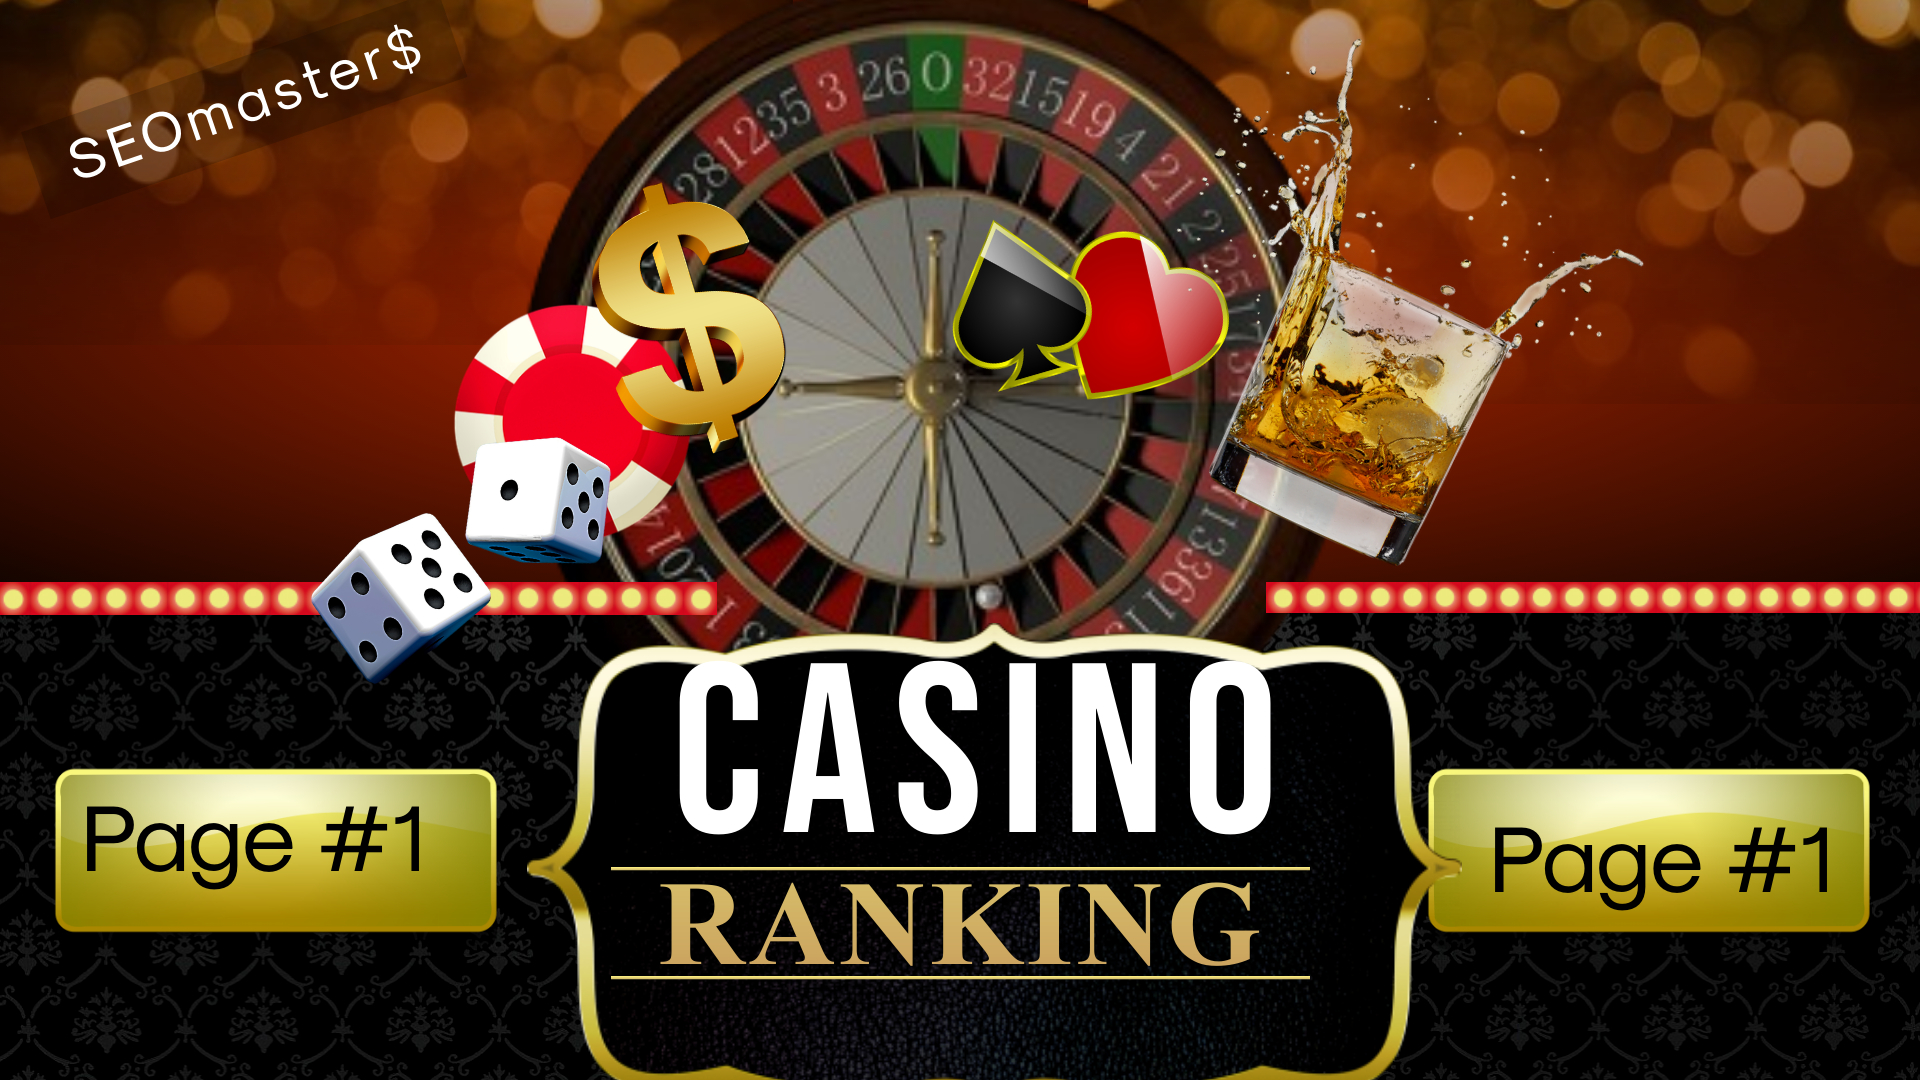 Rank Google1 Page Sbobet Dafabet Ufa Casino Poker Online Sports Betting Gambling Websites 1 Keyword